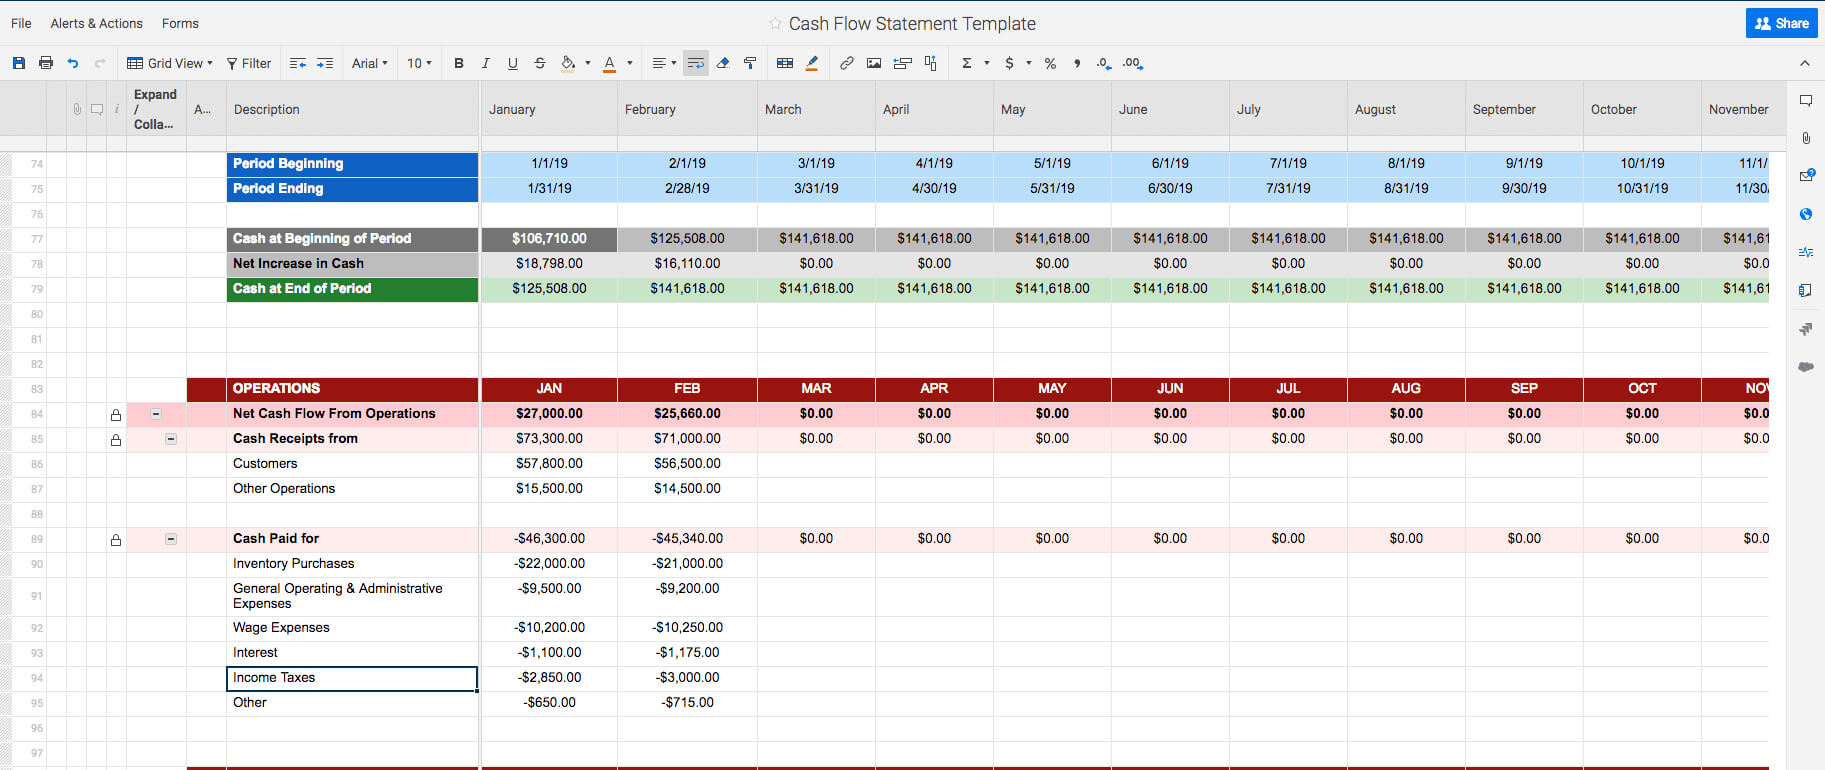 Free Cash Flow Statement Templates | Smartsheet Intended For Cash Position Report Template